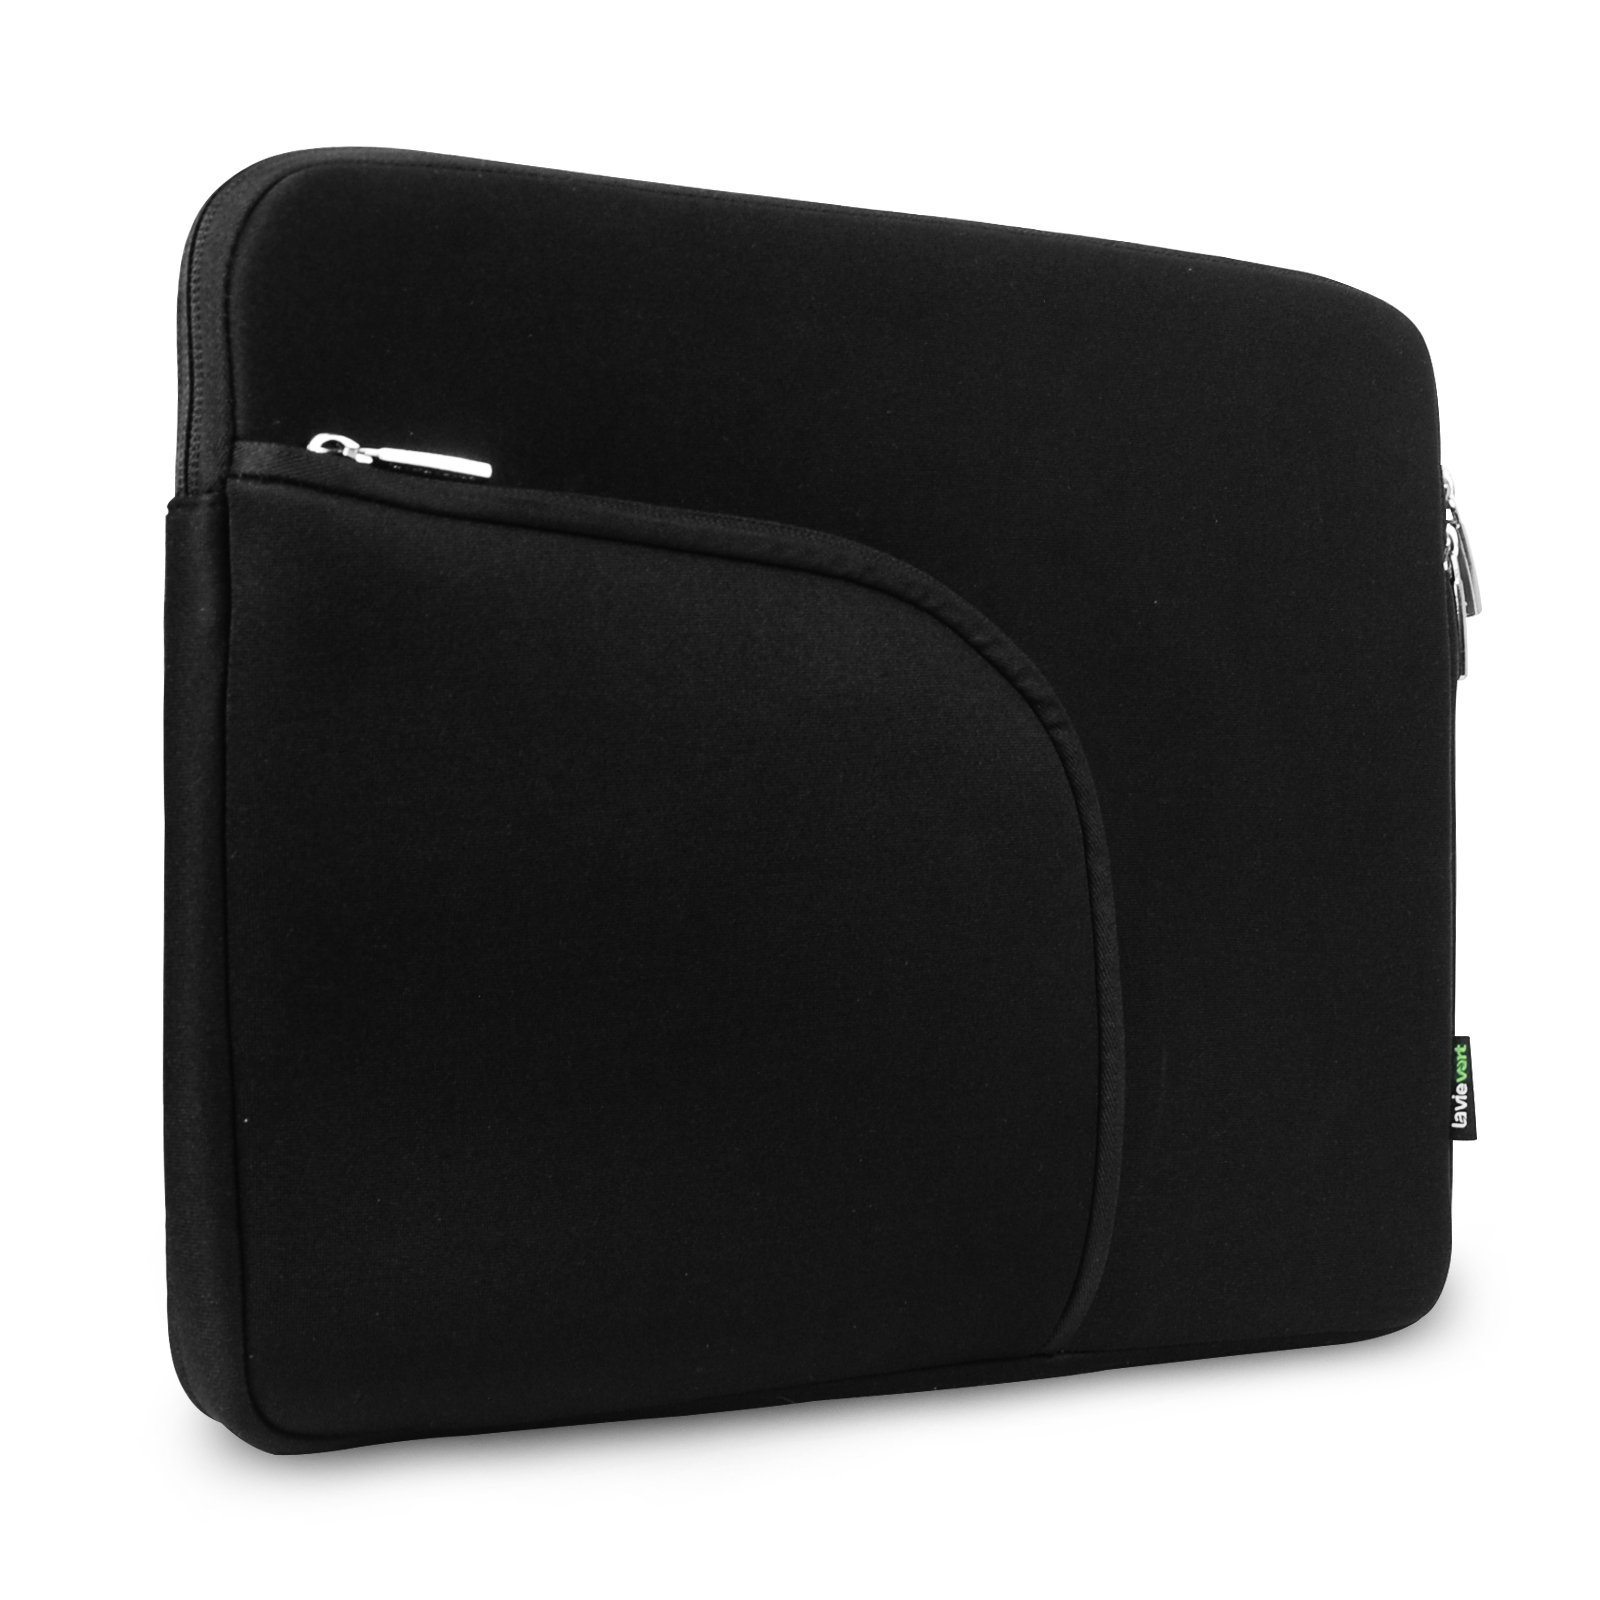 Lavievert Soft Neoprene(Water Resistance) Sleeve Case Bag with Extra Front Pocket for 13 inch Macbook Retina Pro,13 inch Macbook Air, 13 inch Macbook Pro and Most Popular 13-13.3 Inch Laptop – Black